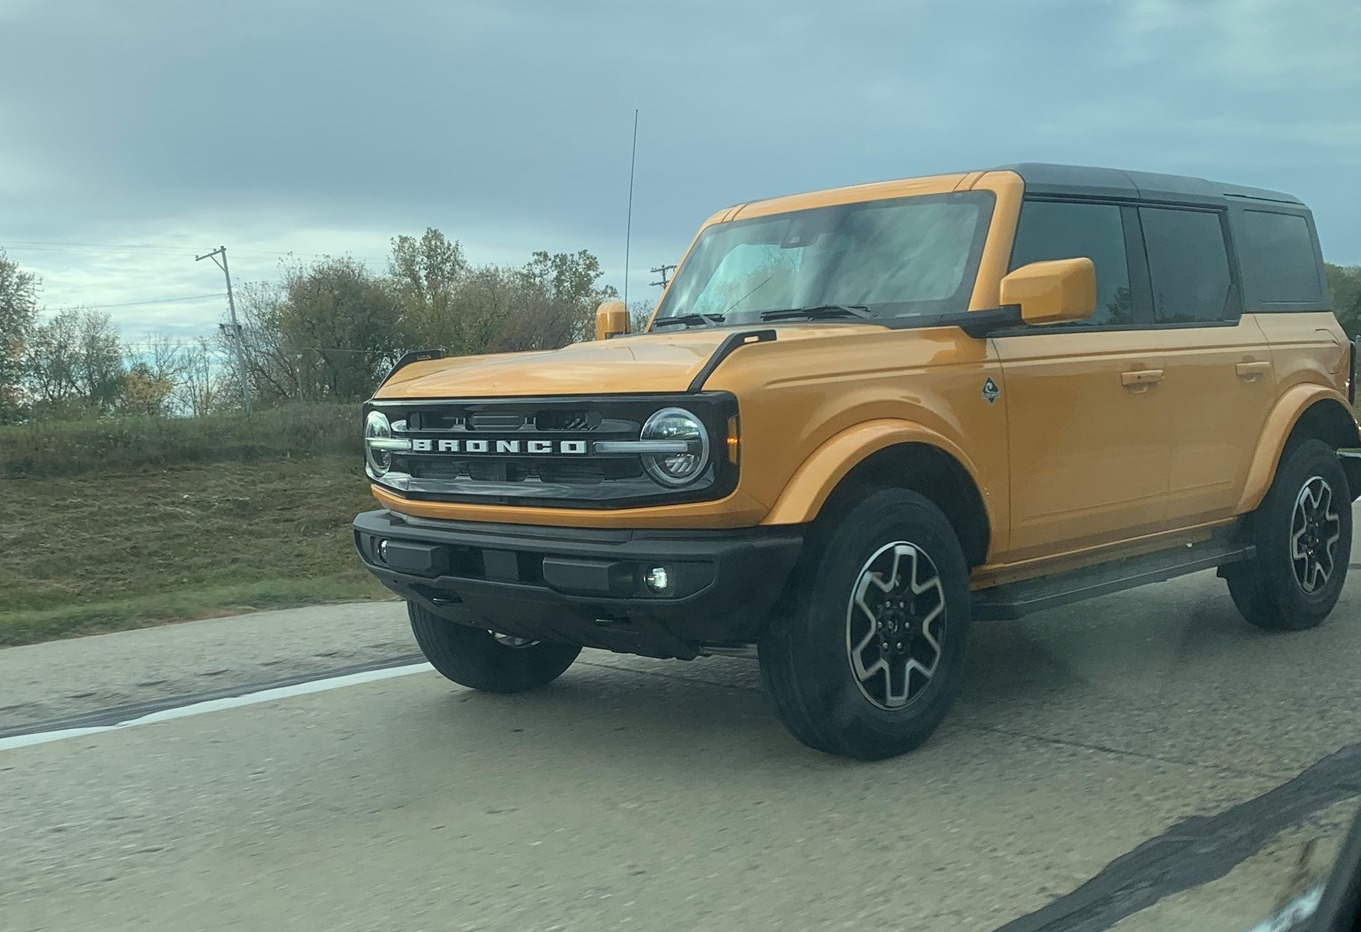 Cyber Orange Outer Banks 2021 Bronco on the road in real life 2.jpg